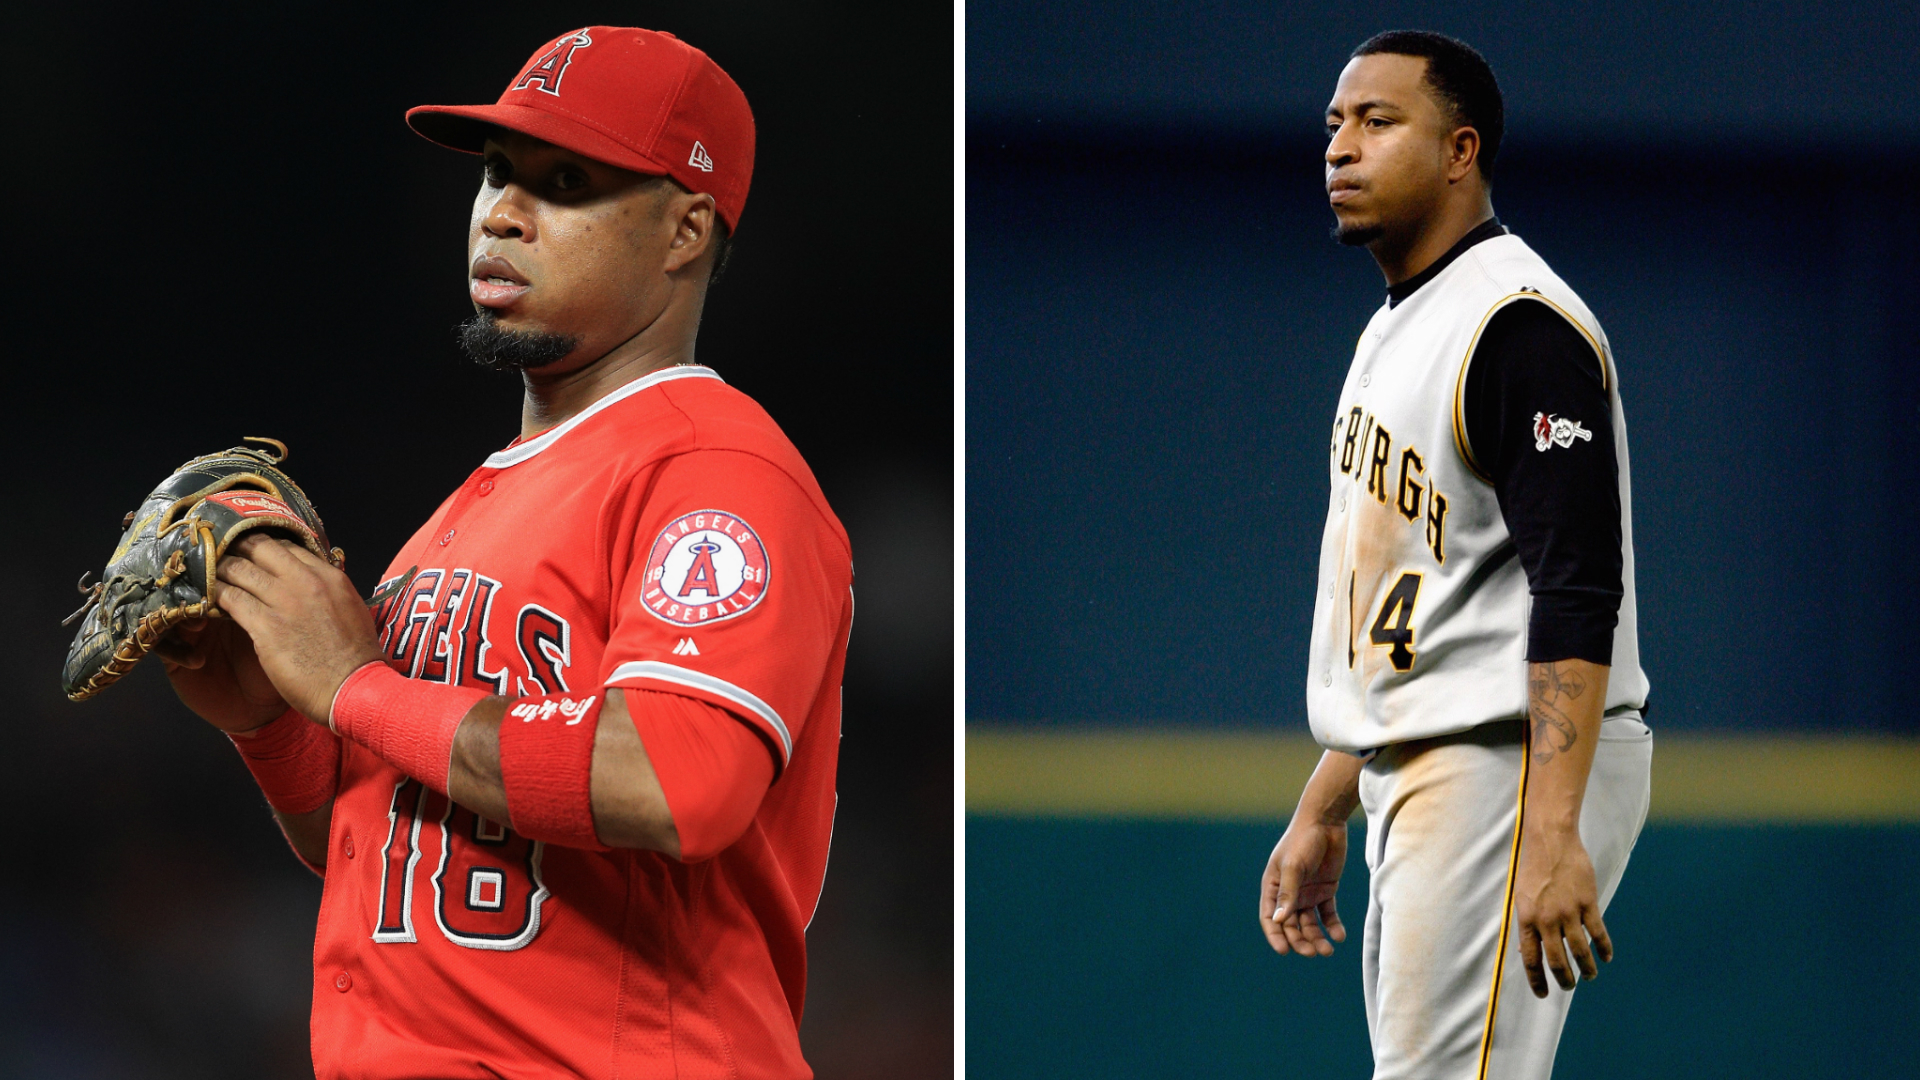 Ex-MLBers Luis Valbuena, Jose Castillo Die In Car Crash In Venezuela